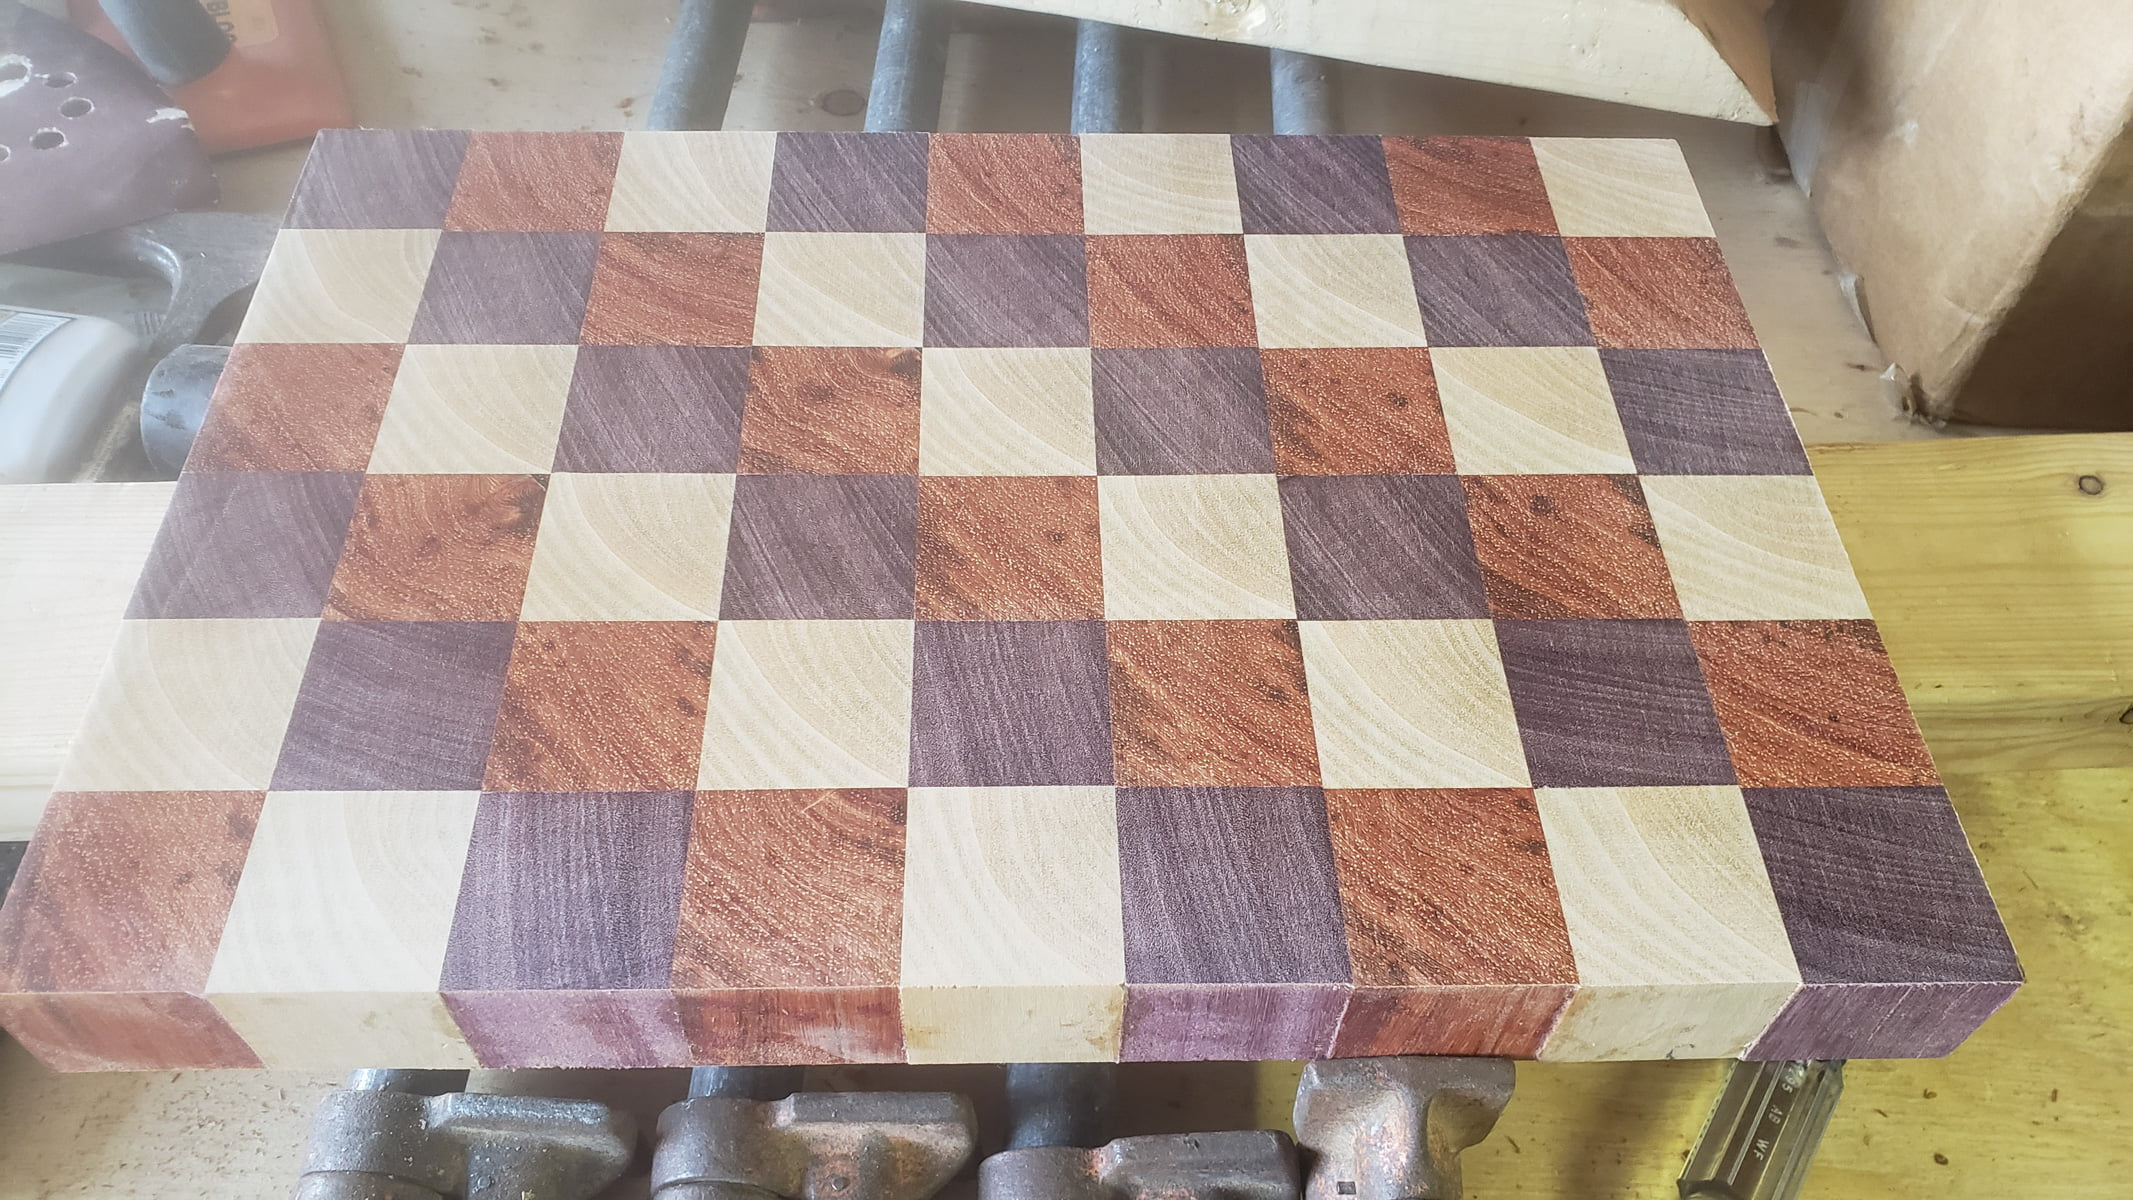 The cutting board, made from an array of small cubes, is seen face up. The surface is smooth but slightly hazy from the rough sanding.